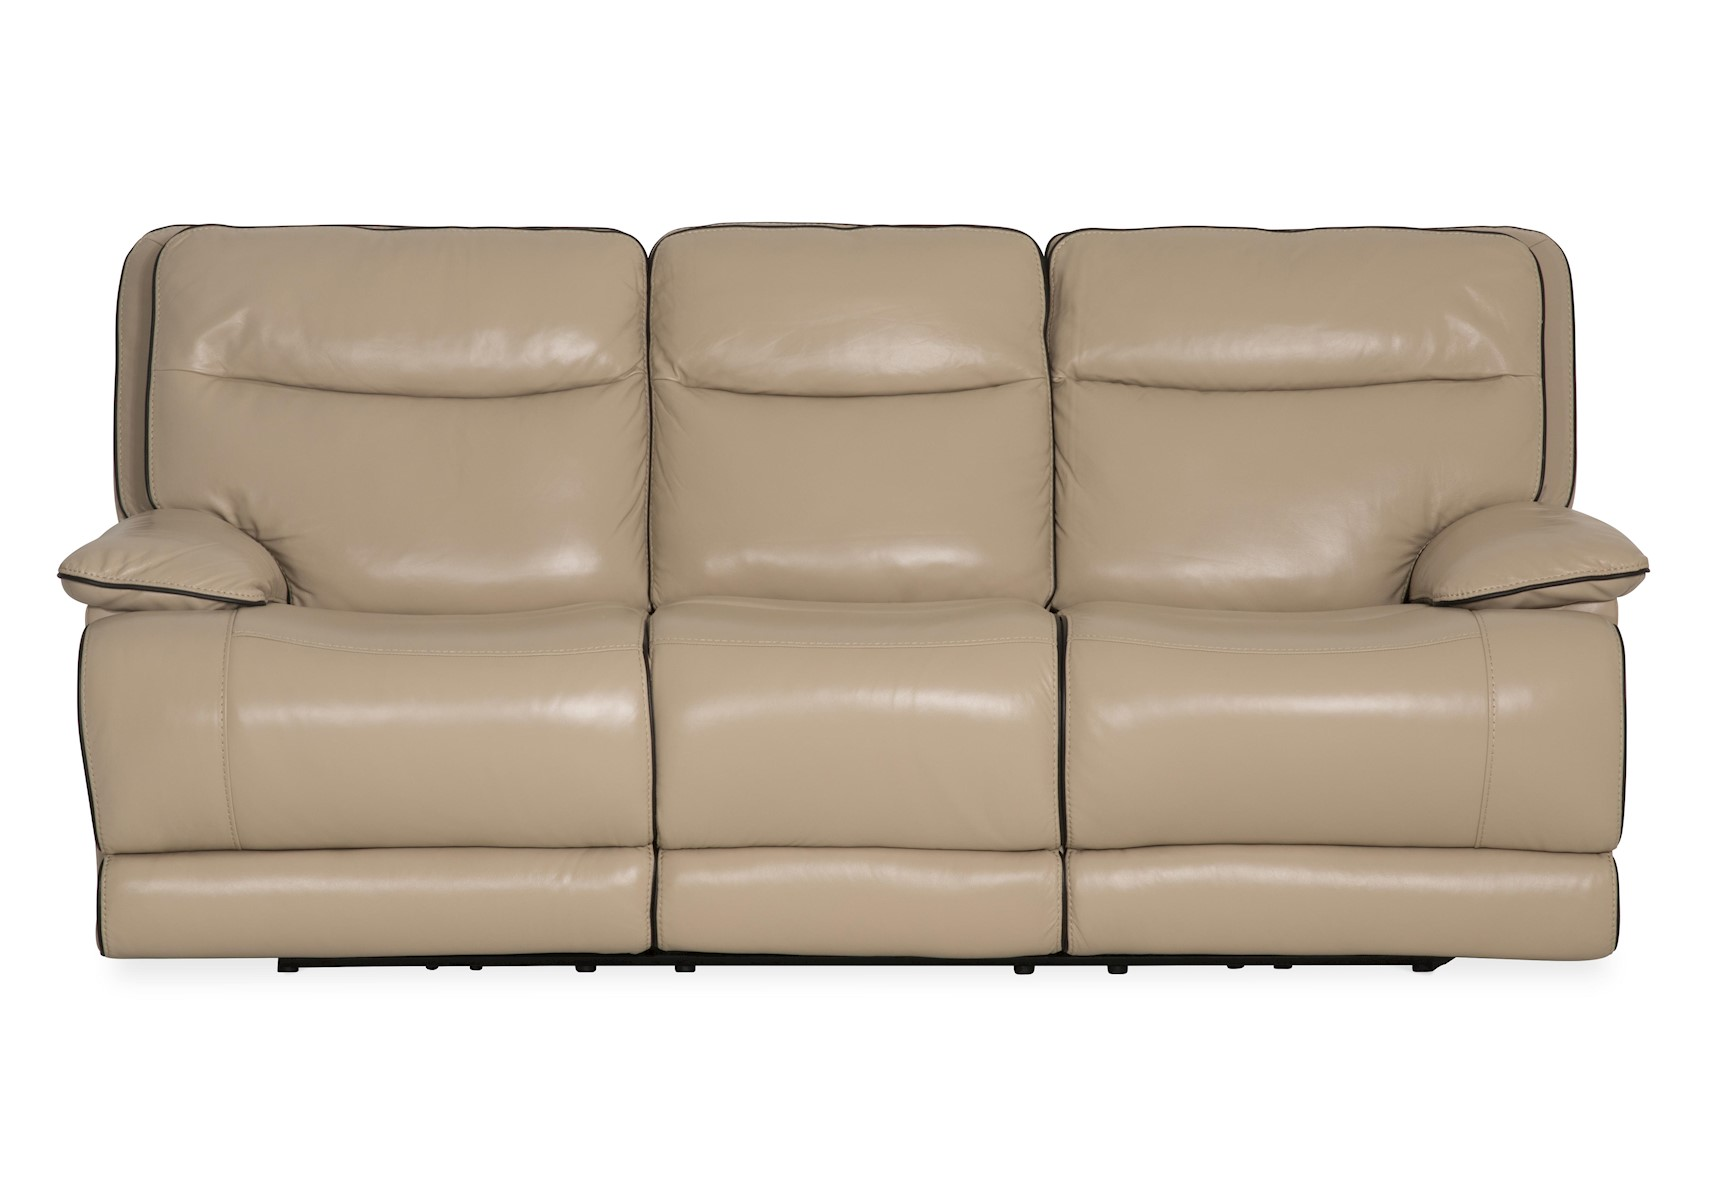 Lacks | Owen Dual Reclining Sofa